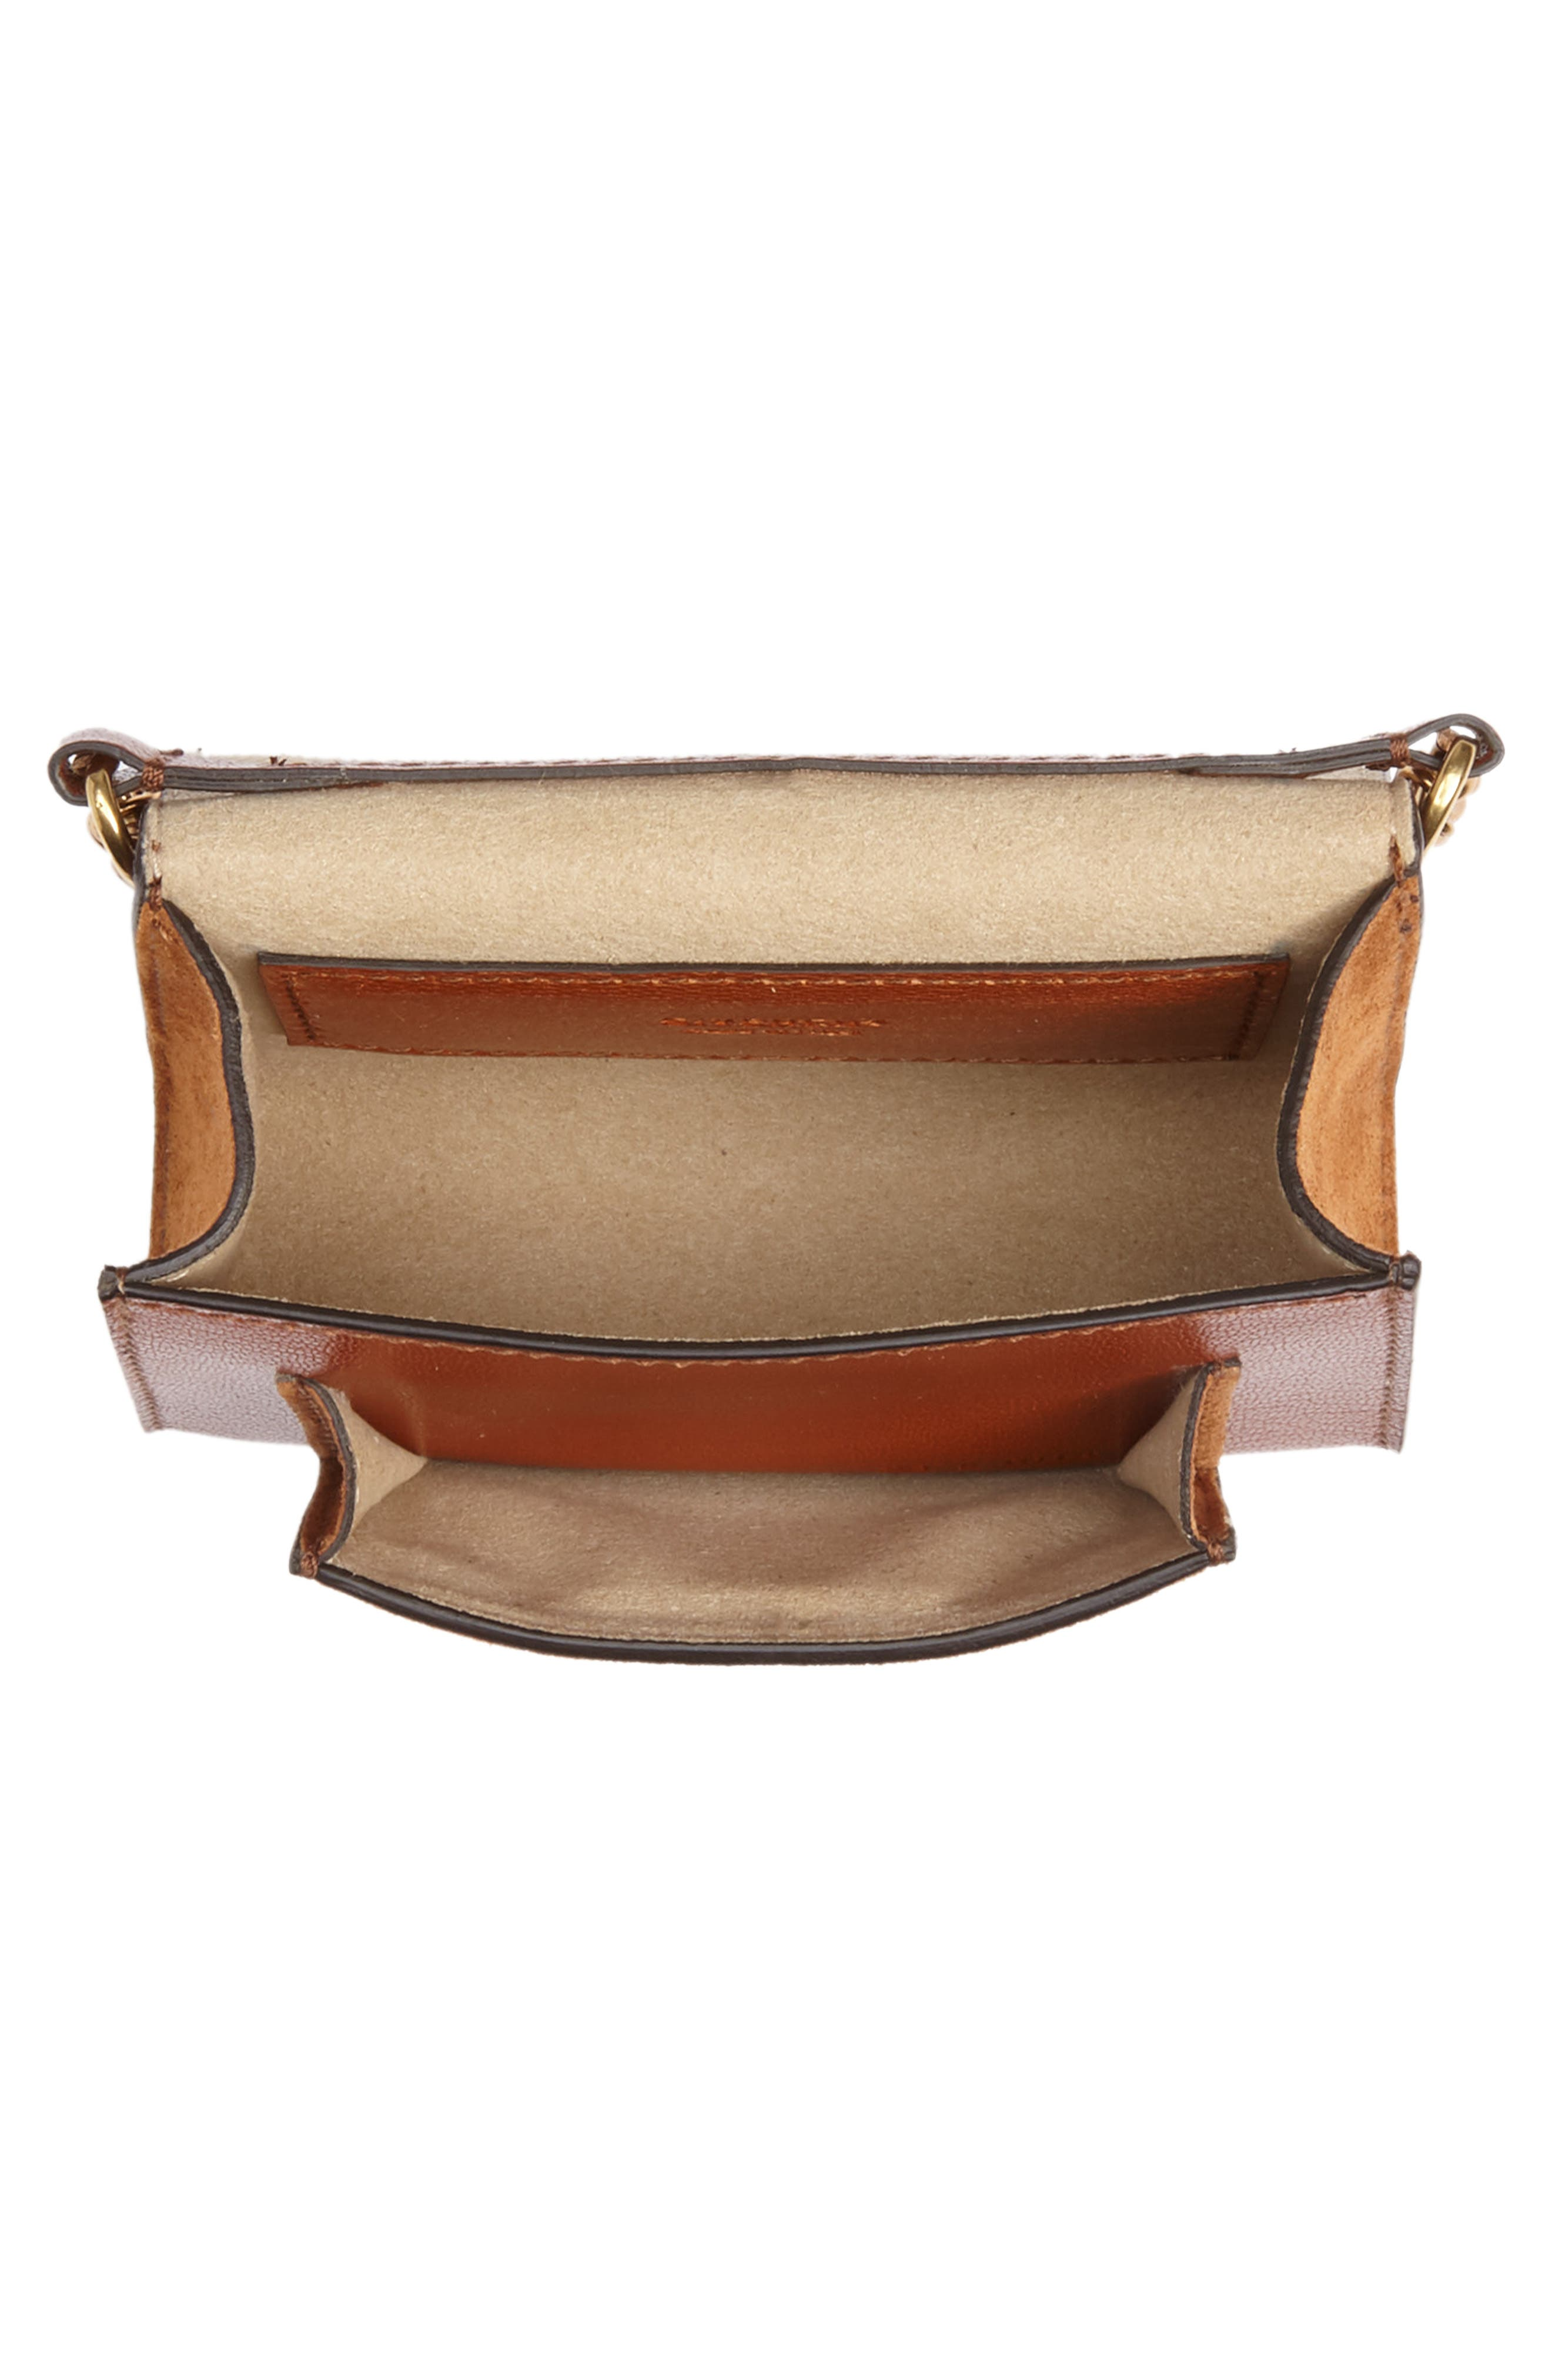 Givency Nano GV3 Leather & Suede Crossbody Bag,                             Alternate thumbnail 4, color,                             Chestnut